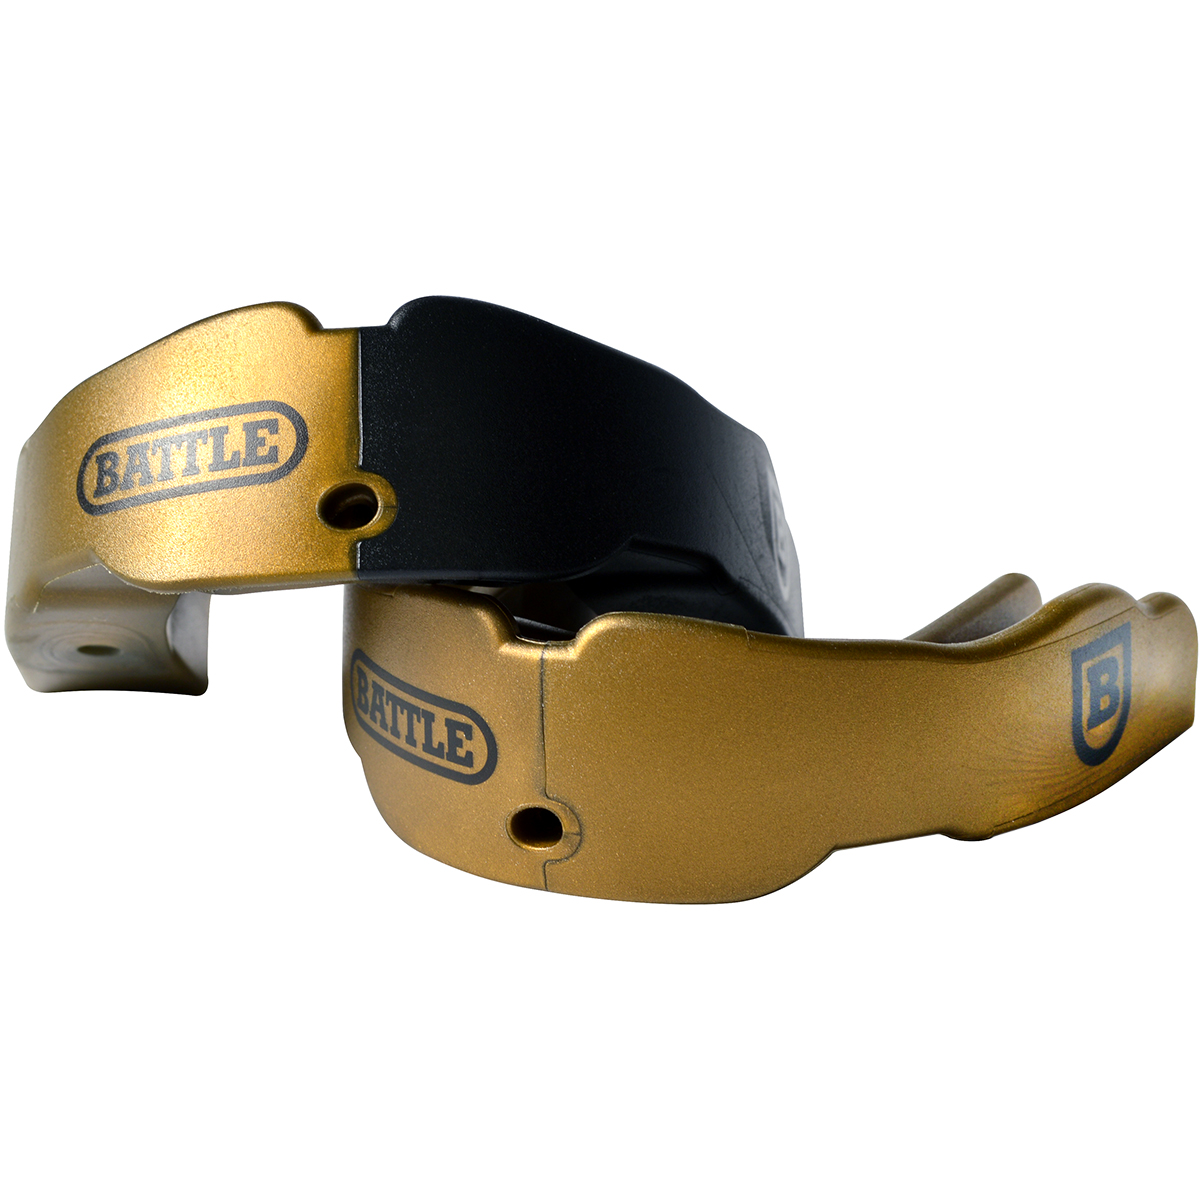 Battle-Sports-Science-Adult-Football-Mouthguard-2-Pack-with-Straps thumbnail 4